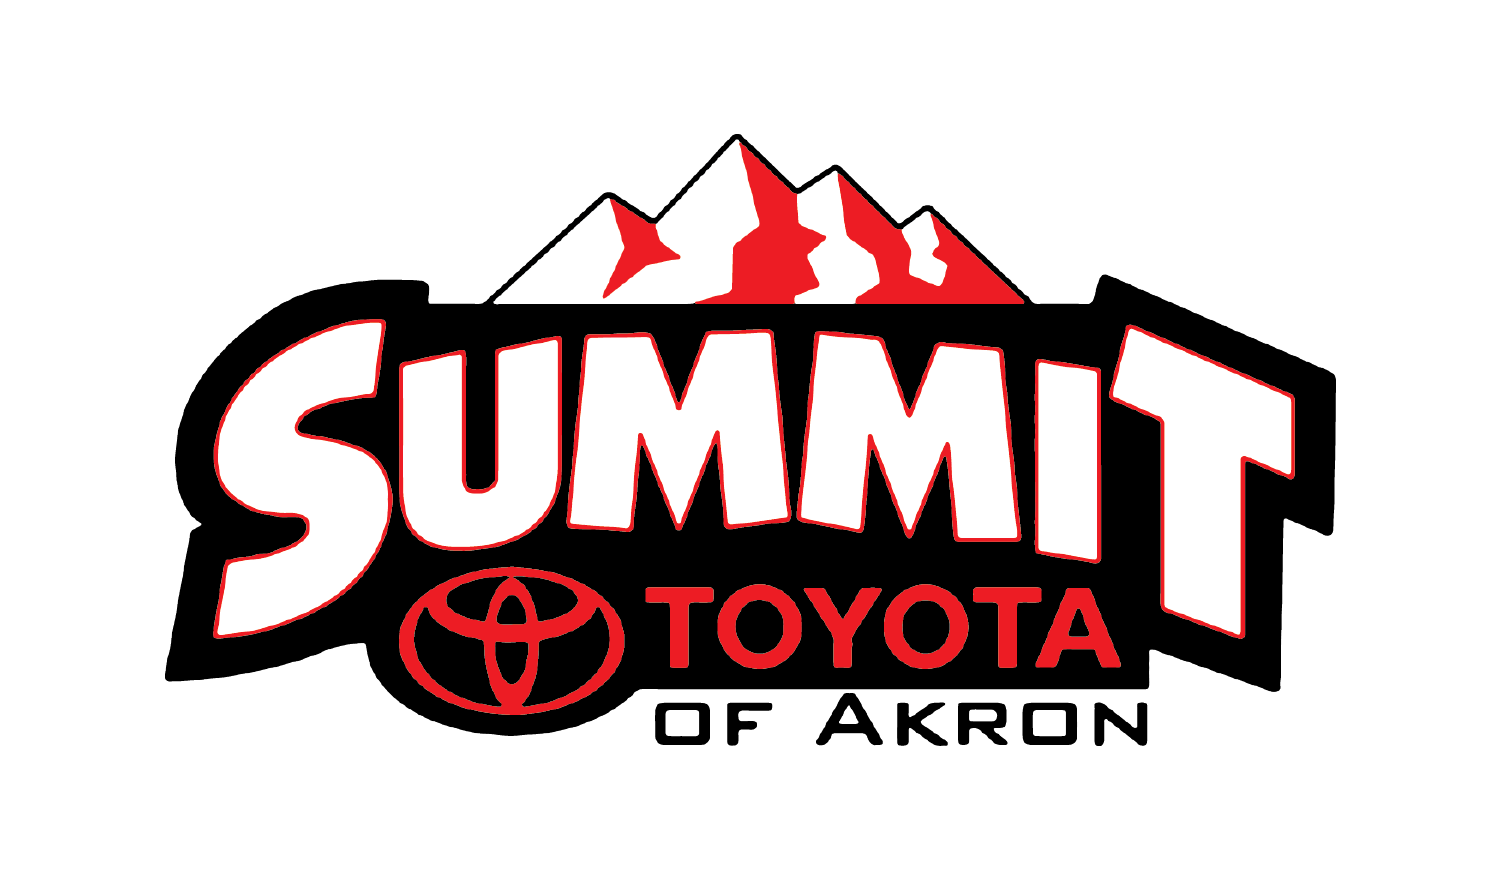 SummitToyota_LogoWhite-01.png